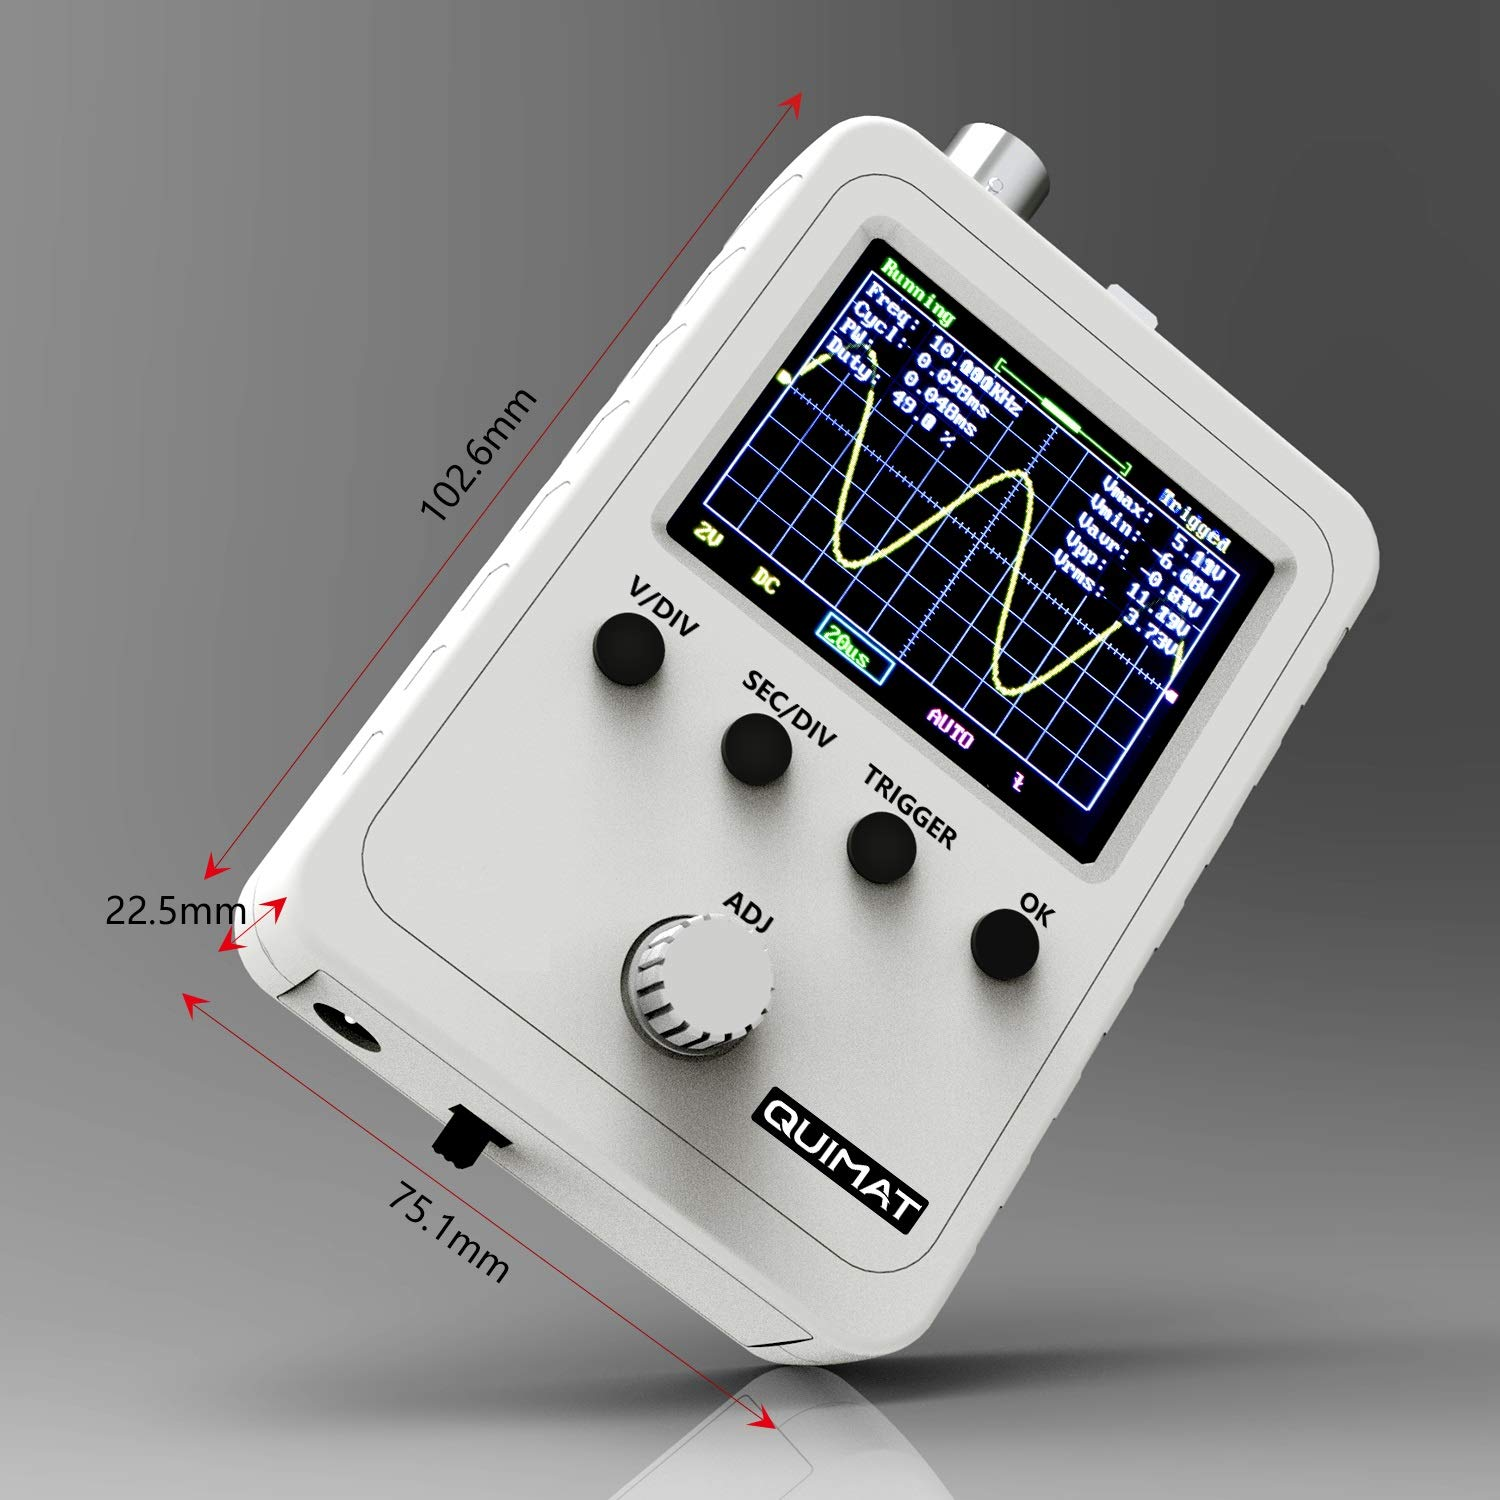 Assembled Finished Machine Quimat Updated 2.4 TFT Digital Oscilloscope Kit with Power Supply and BNC-Clip Cable Probe Q15001